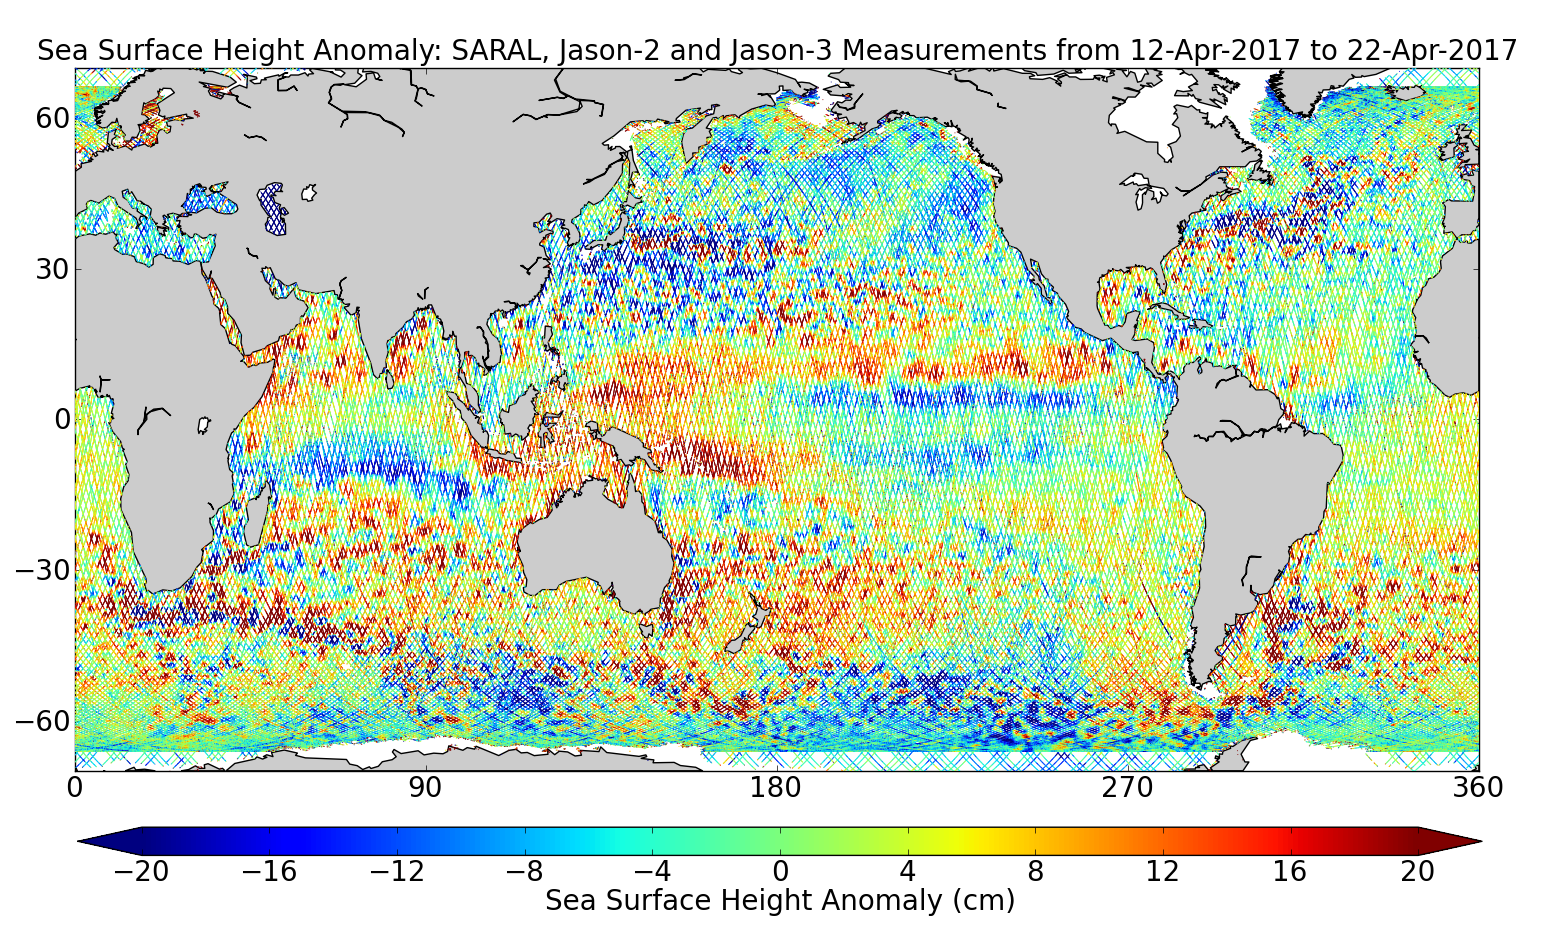 Sea Surface Height Anomaly: SARAL, Jason-2 and Jason-3 Measurements from 12-Apr-2017 to 22-Apr-2017